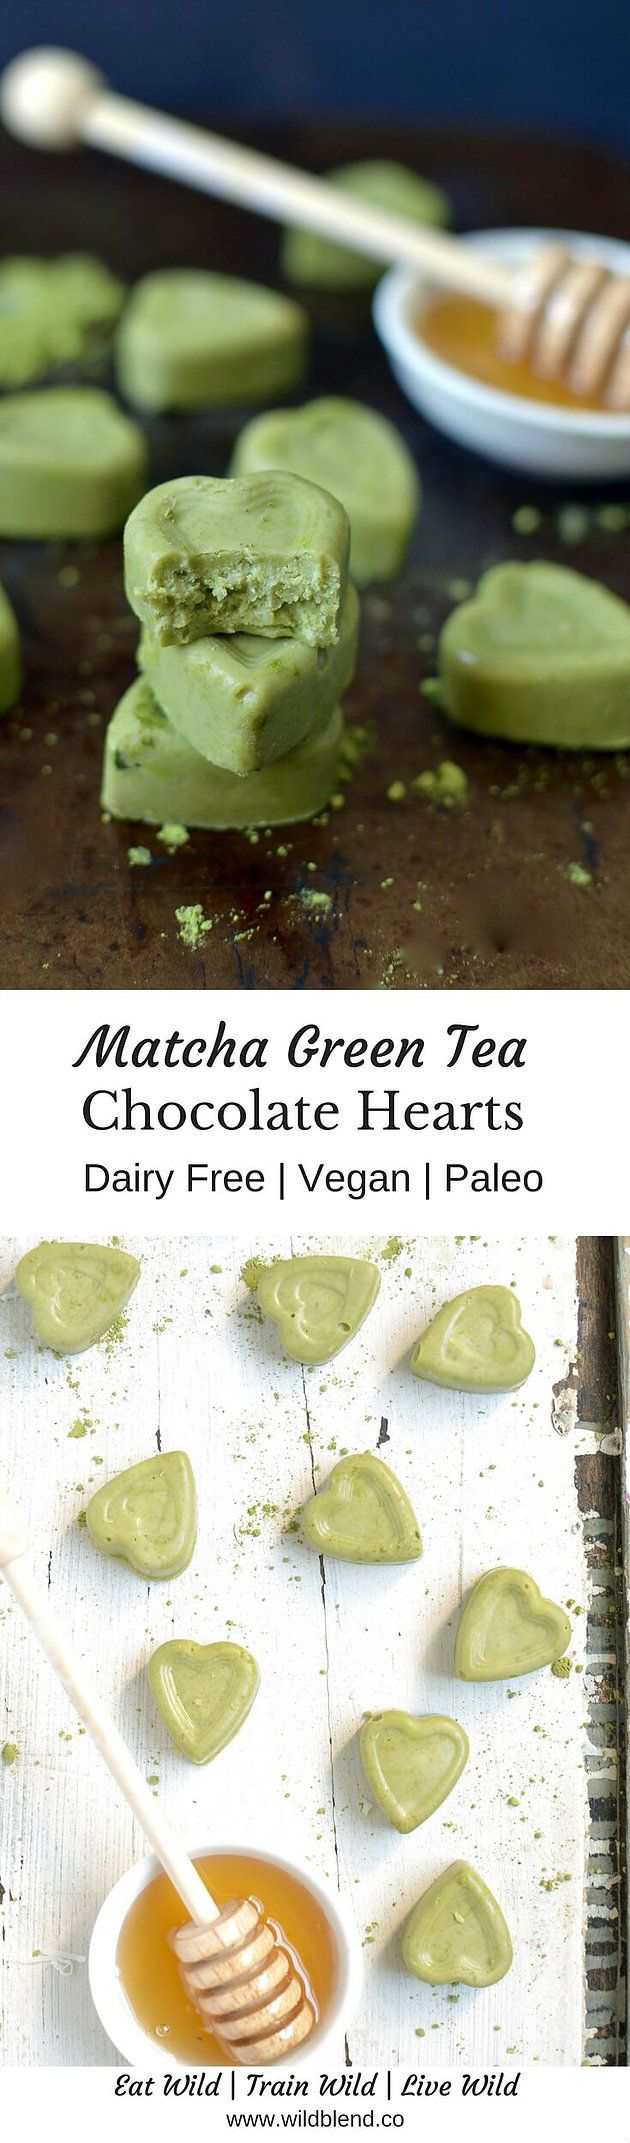 You've probably tried matcha lattes before but have you had matcha chocolate? No? That's ok because it's my frist time also. Let's get into vibrant green, superfood chocolate bursting with 137 times the antioxidants of green tea! Get the recipe here: http://www.wildblend.co/single-post/2016/10/14/Matcha-Green-Tea-Chocolates